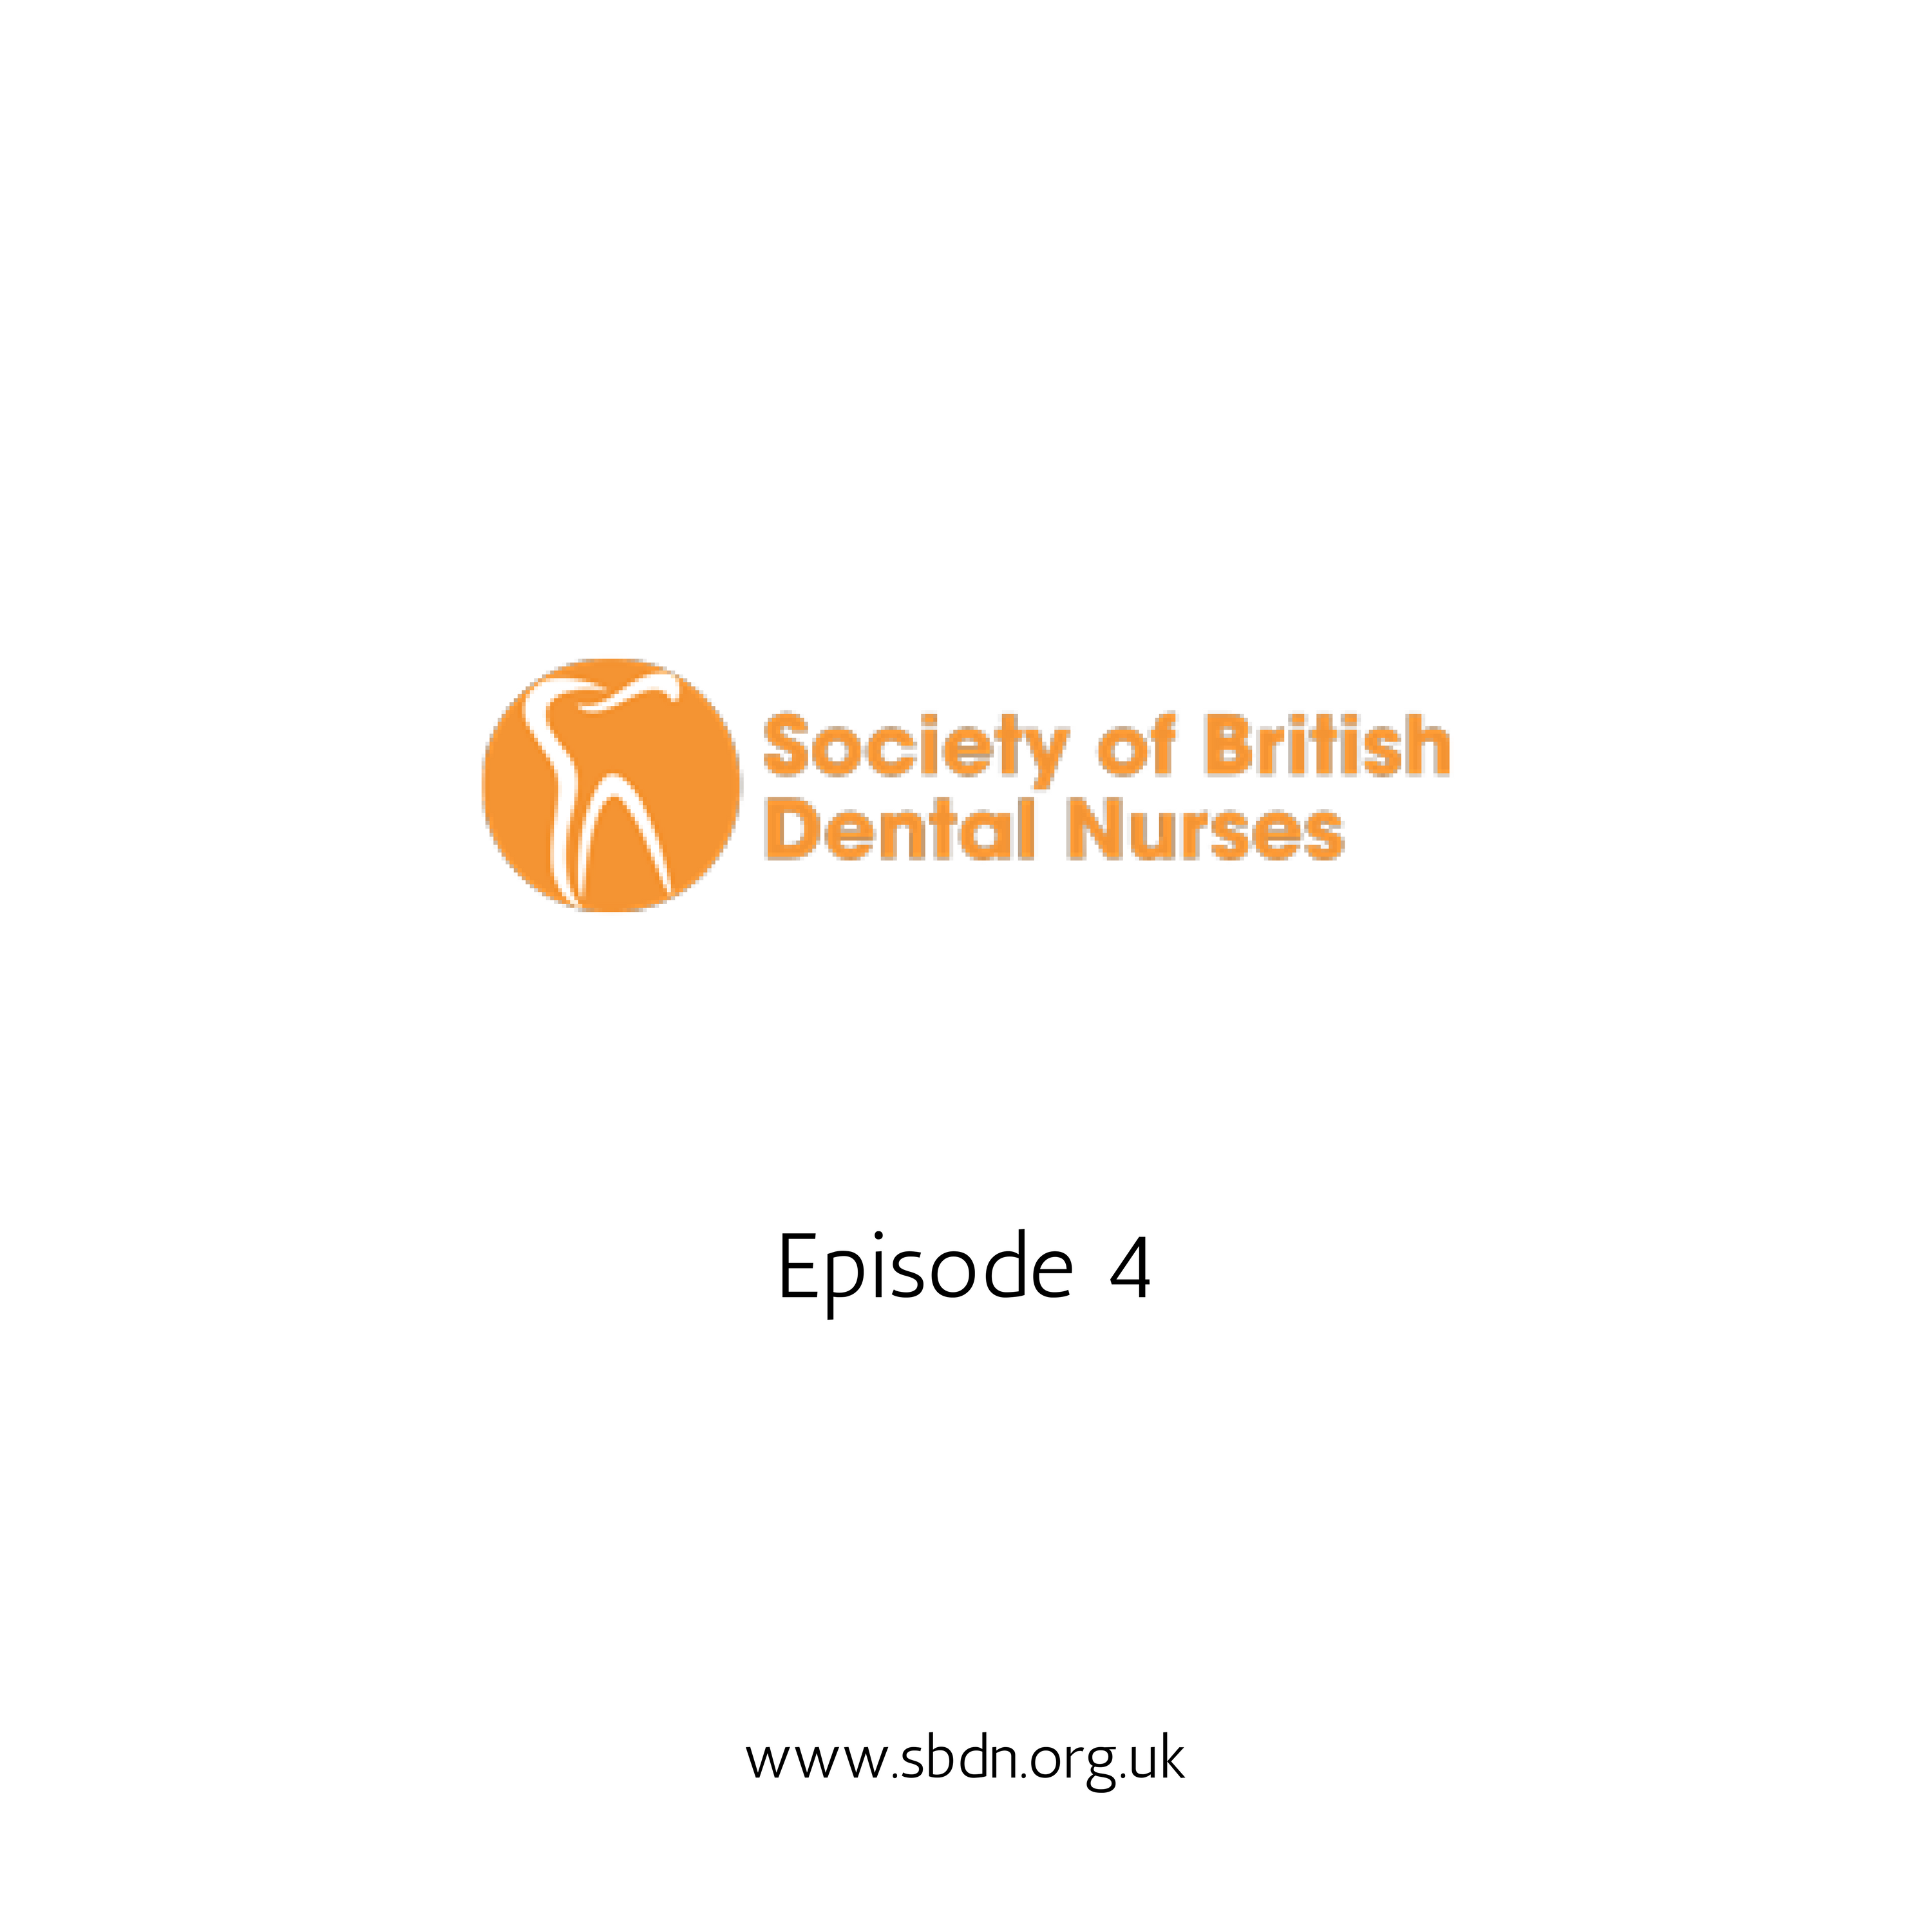 Elaine Tilling an armed forces dental nurse, who now works for TEPE, shares her story and top tips for dental nurses who want to achieve.